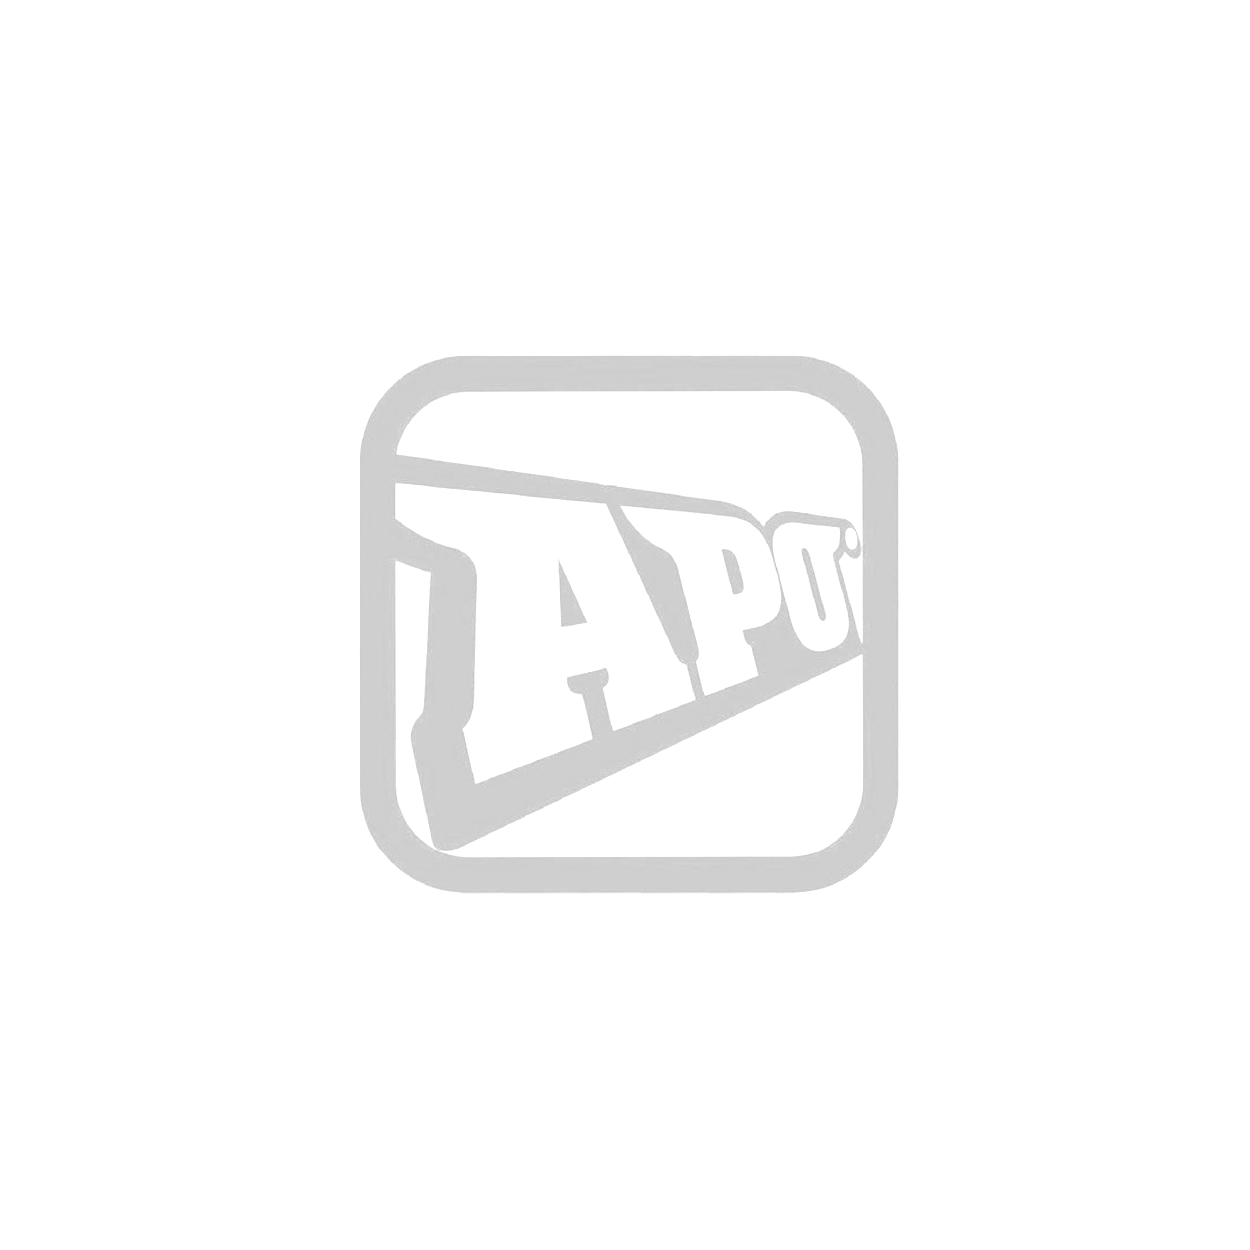 Grayscale_Client_Logo_APO-01.png